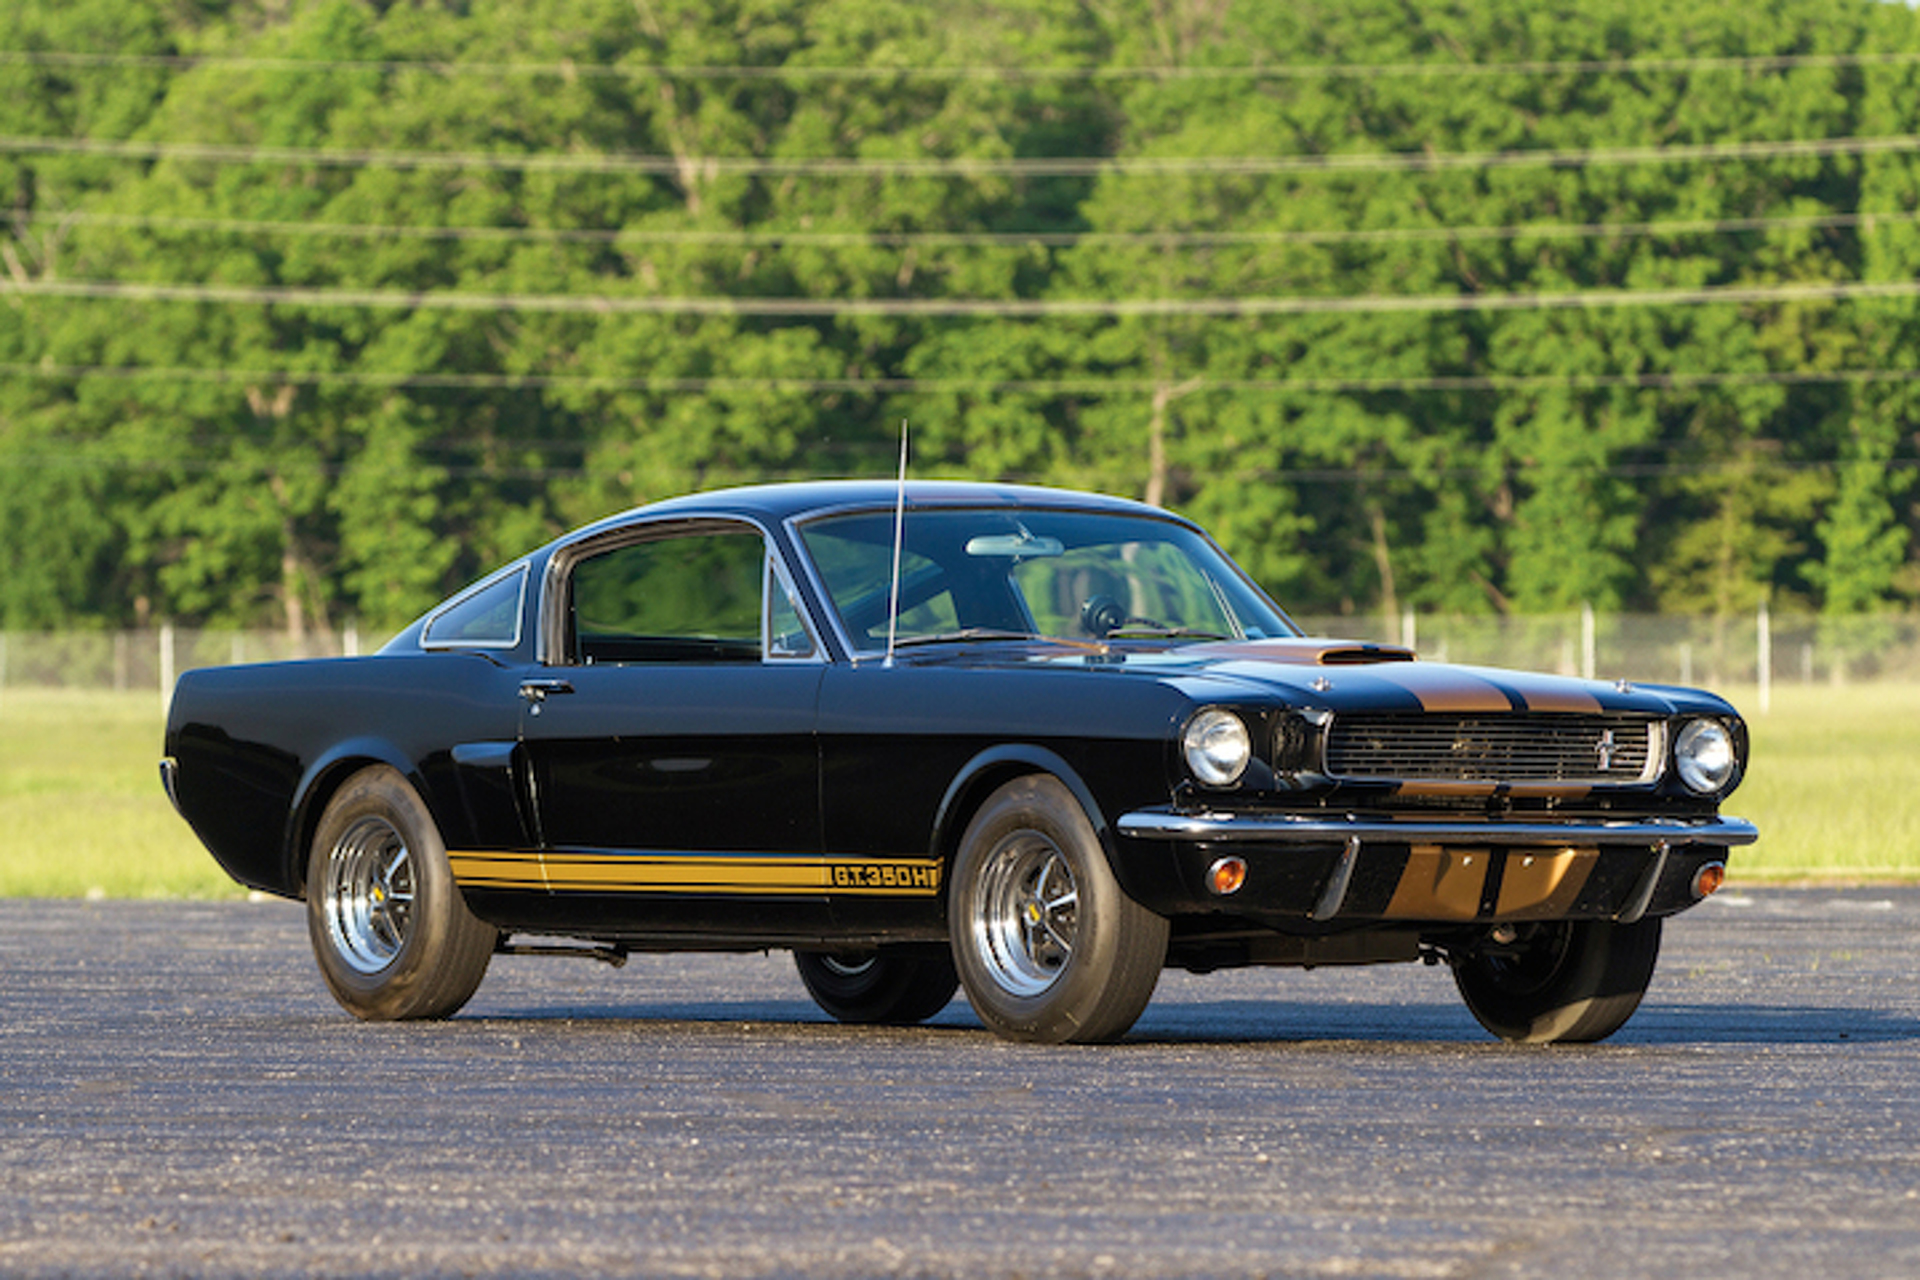 Shelby GT350H 'Rent-a-Racer' Brought Muscle to Masses